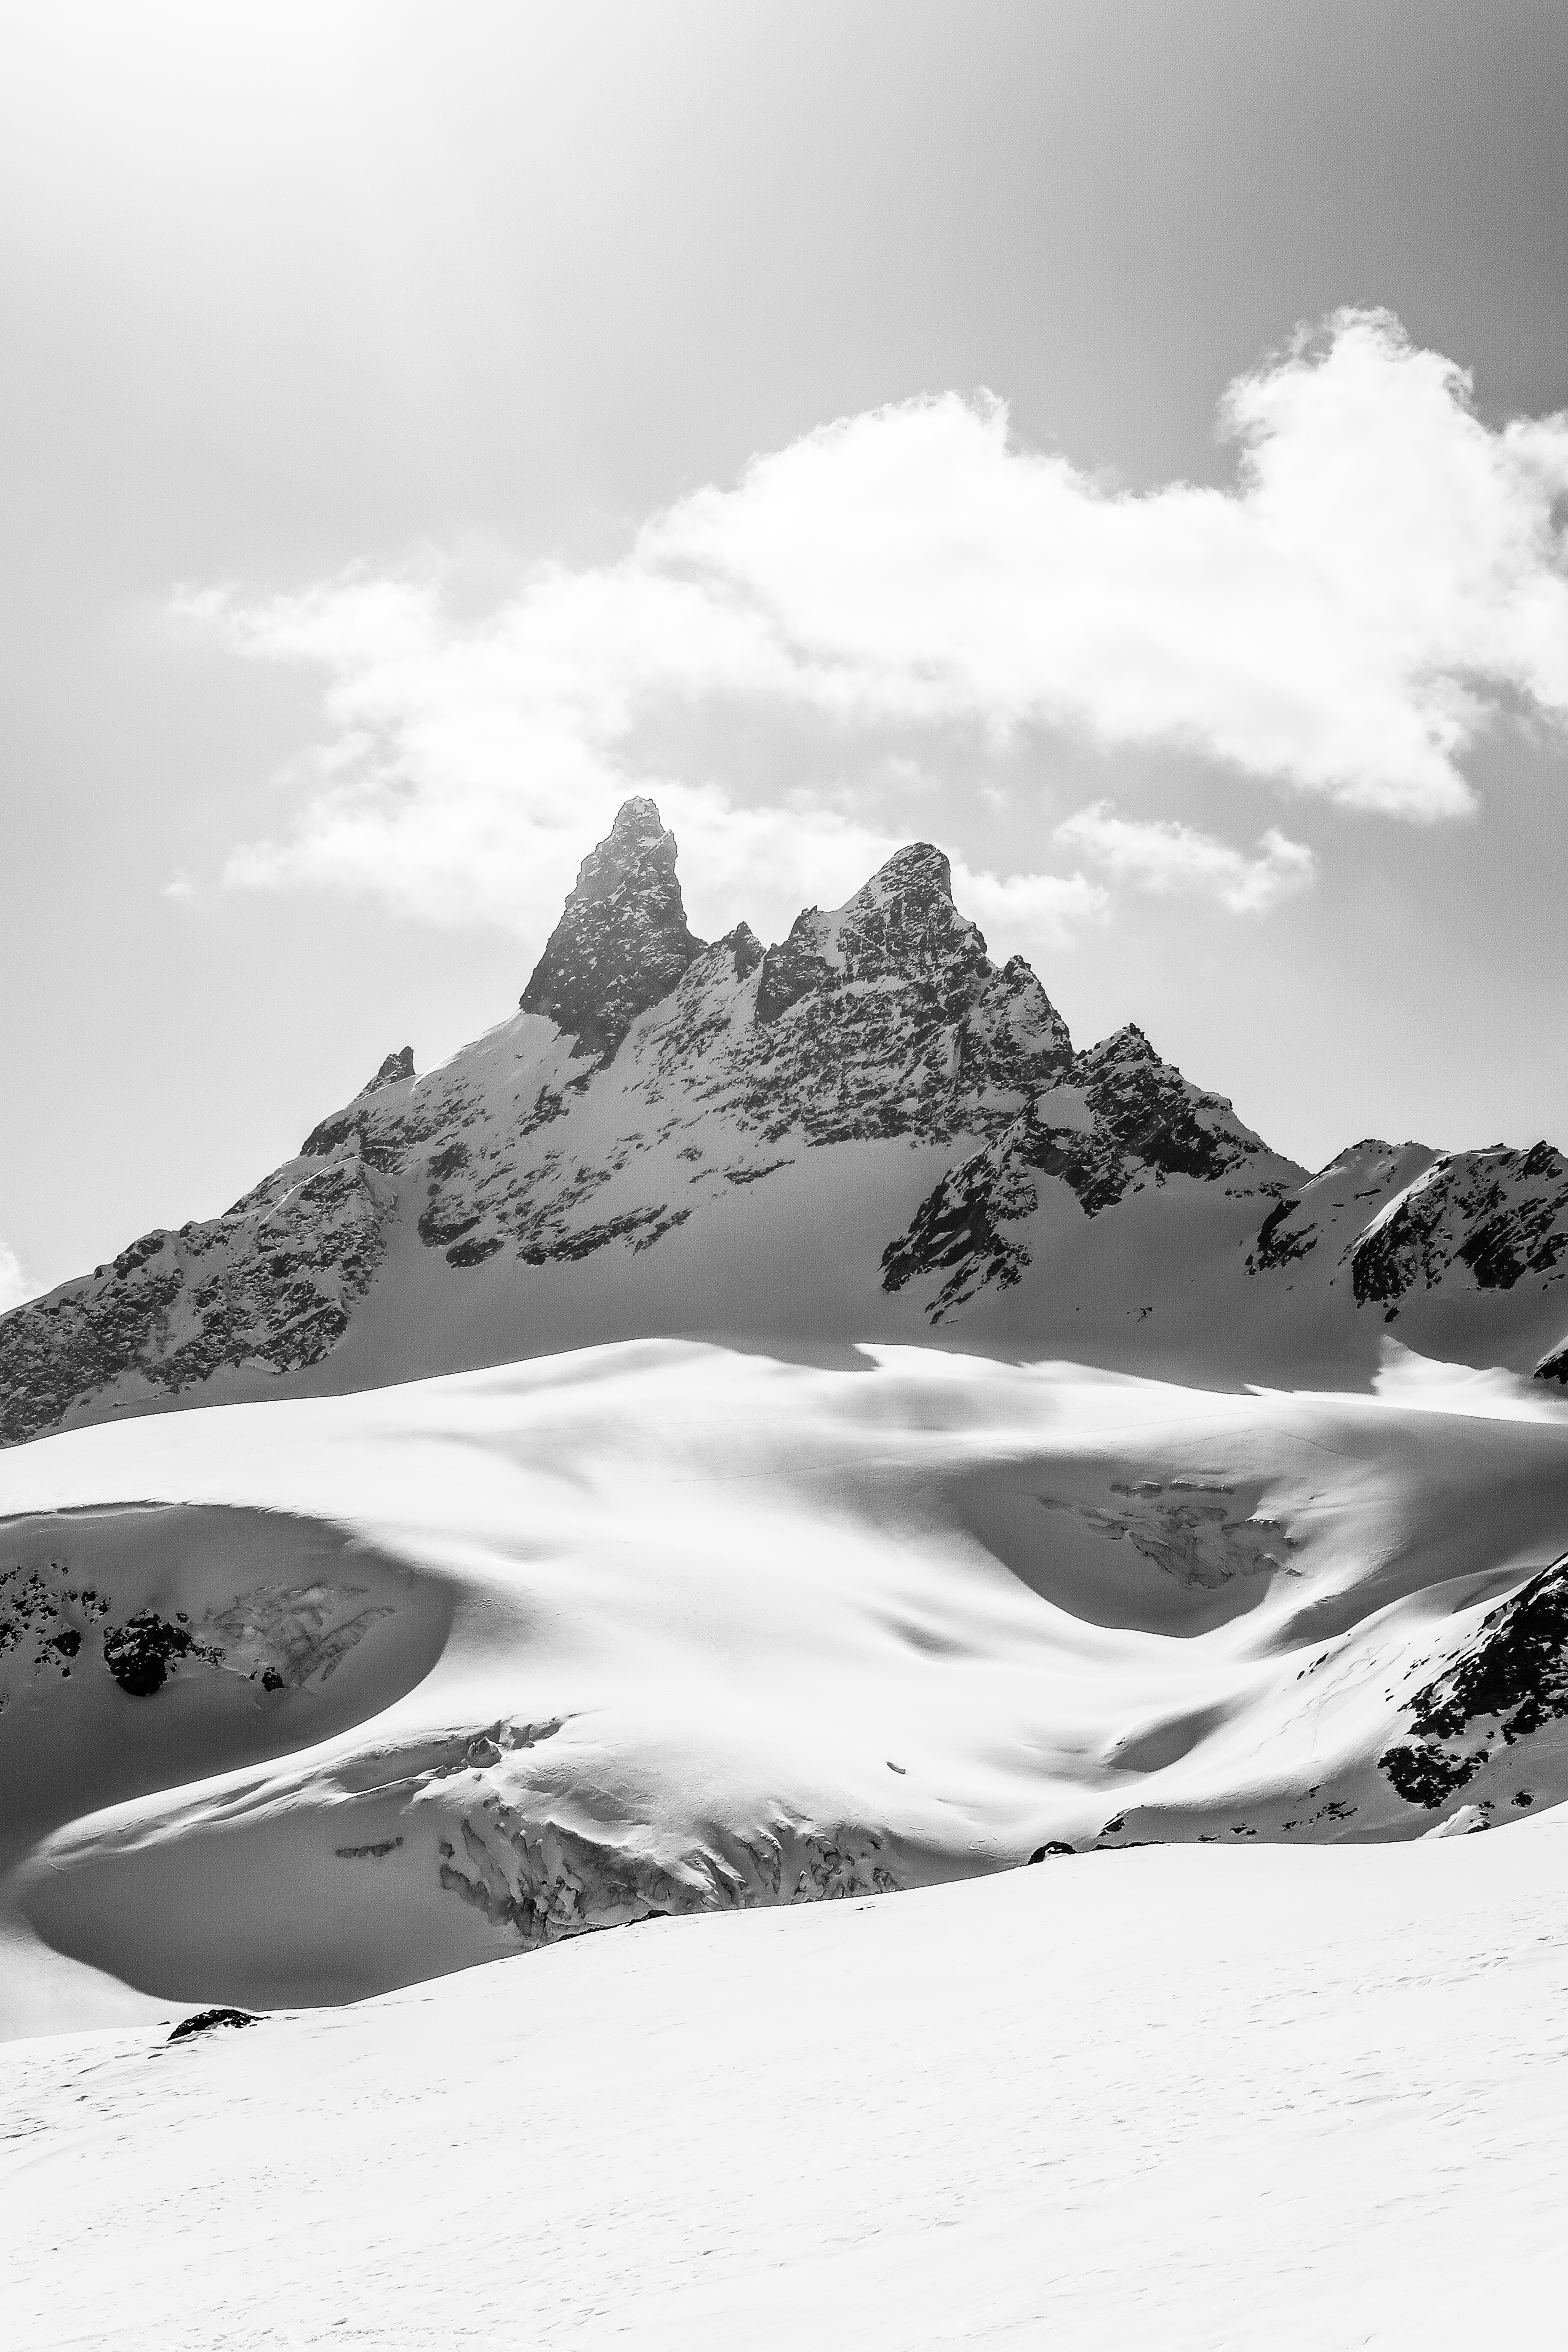 Les Aiguilles Rouges d'Arolla and it's glacier below. This was during a nice sunny skitouring day.